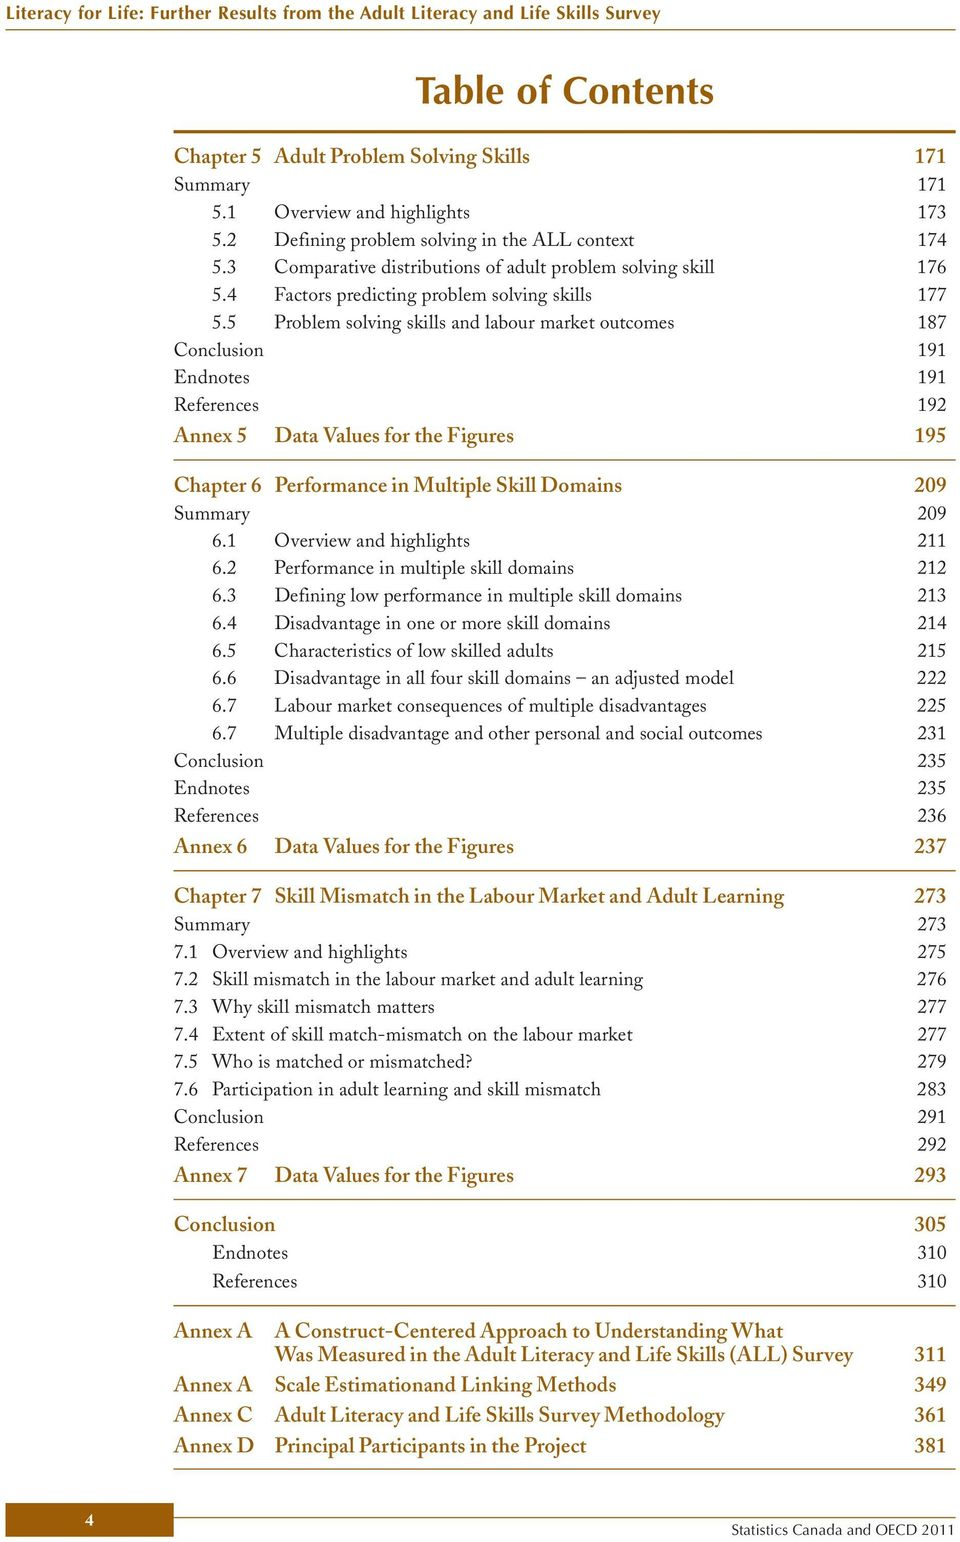 5 Problem solving skills and labour market outcomes 187 Conclusion 191 Endnotes 191 References 192 Annex 5 Data Values for the Figures 195 Chapter 6 Performance in Multiple Skill Domains 209 Summary